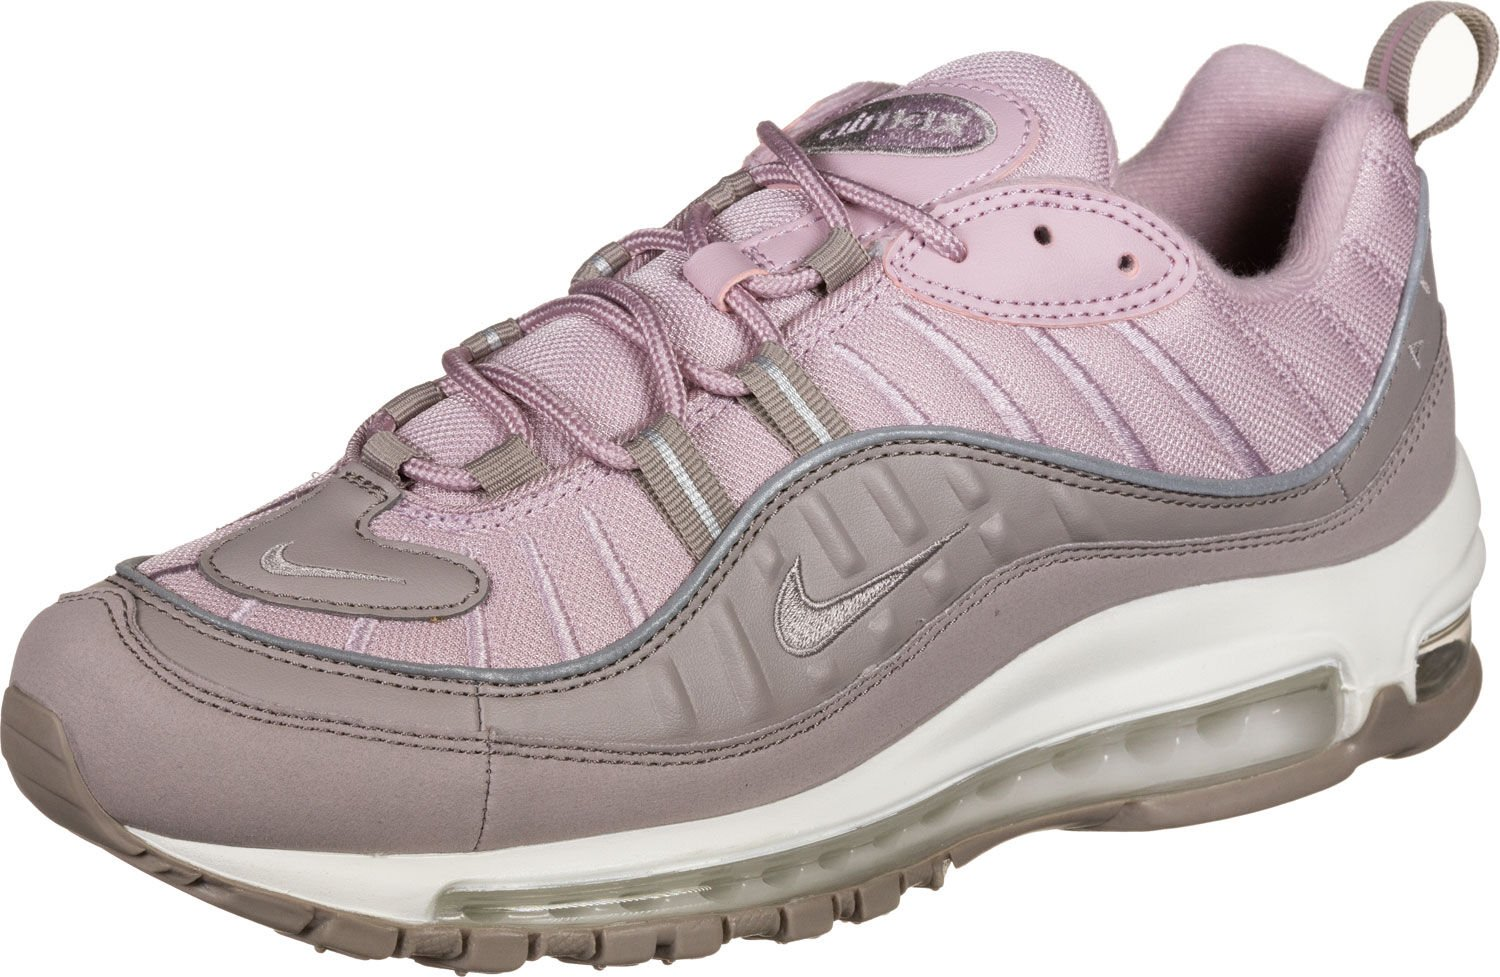 new product outlet store sale newest Air Max 98 - Baskets low - Hommes chez Stylefile